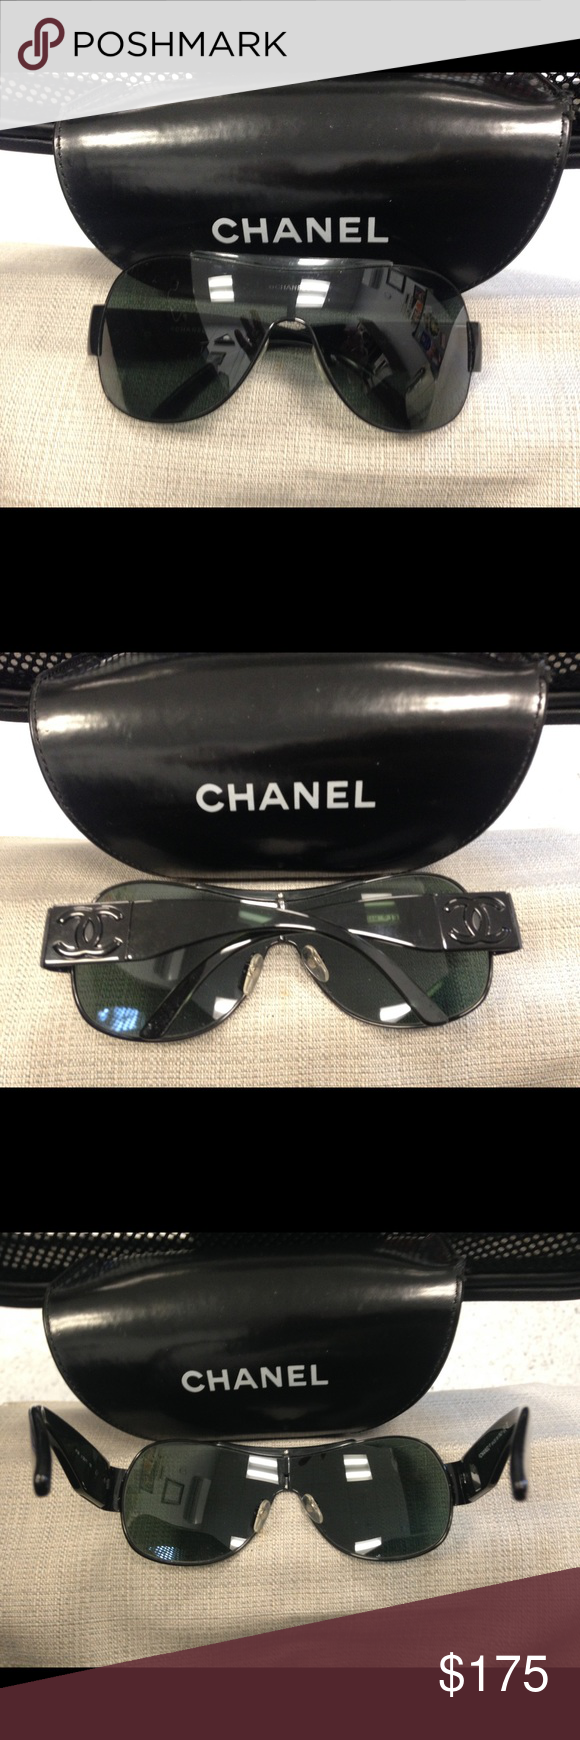 76c6391196c2 Chanel ladies sunglasses Authentic Authentic model 4136 black cc shield  pre- owned excellent condition with